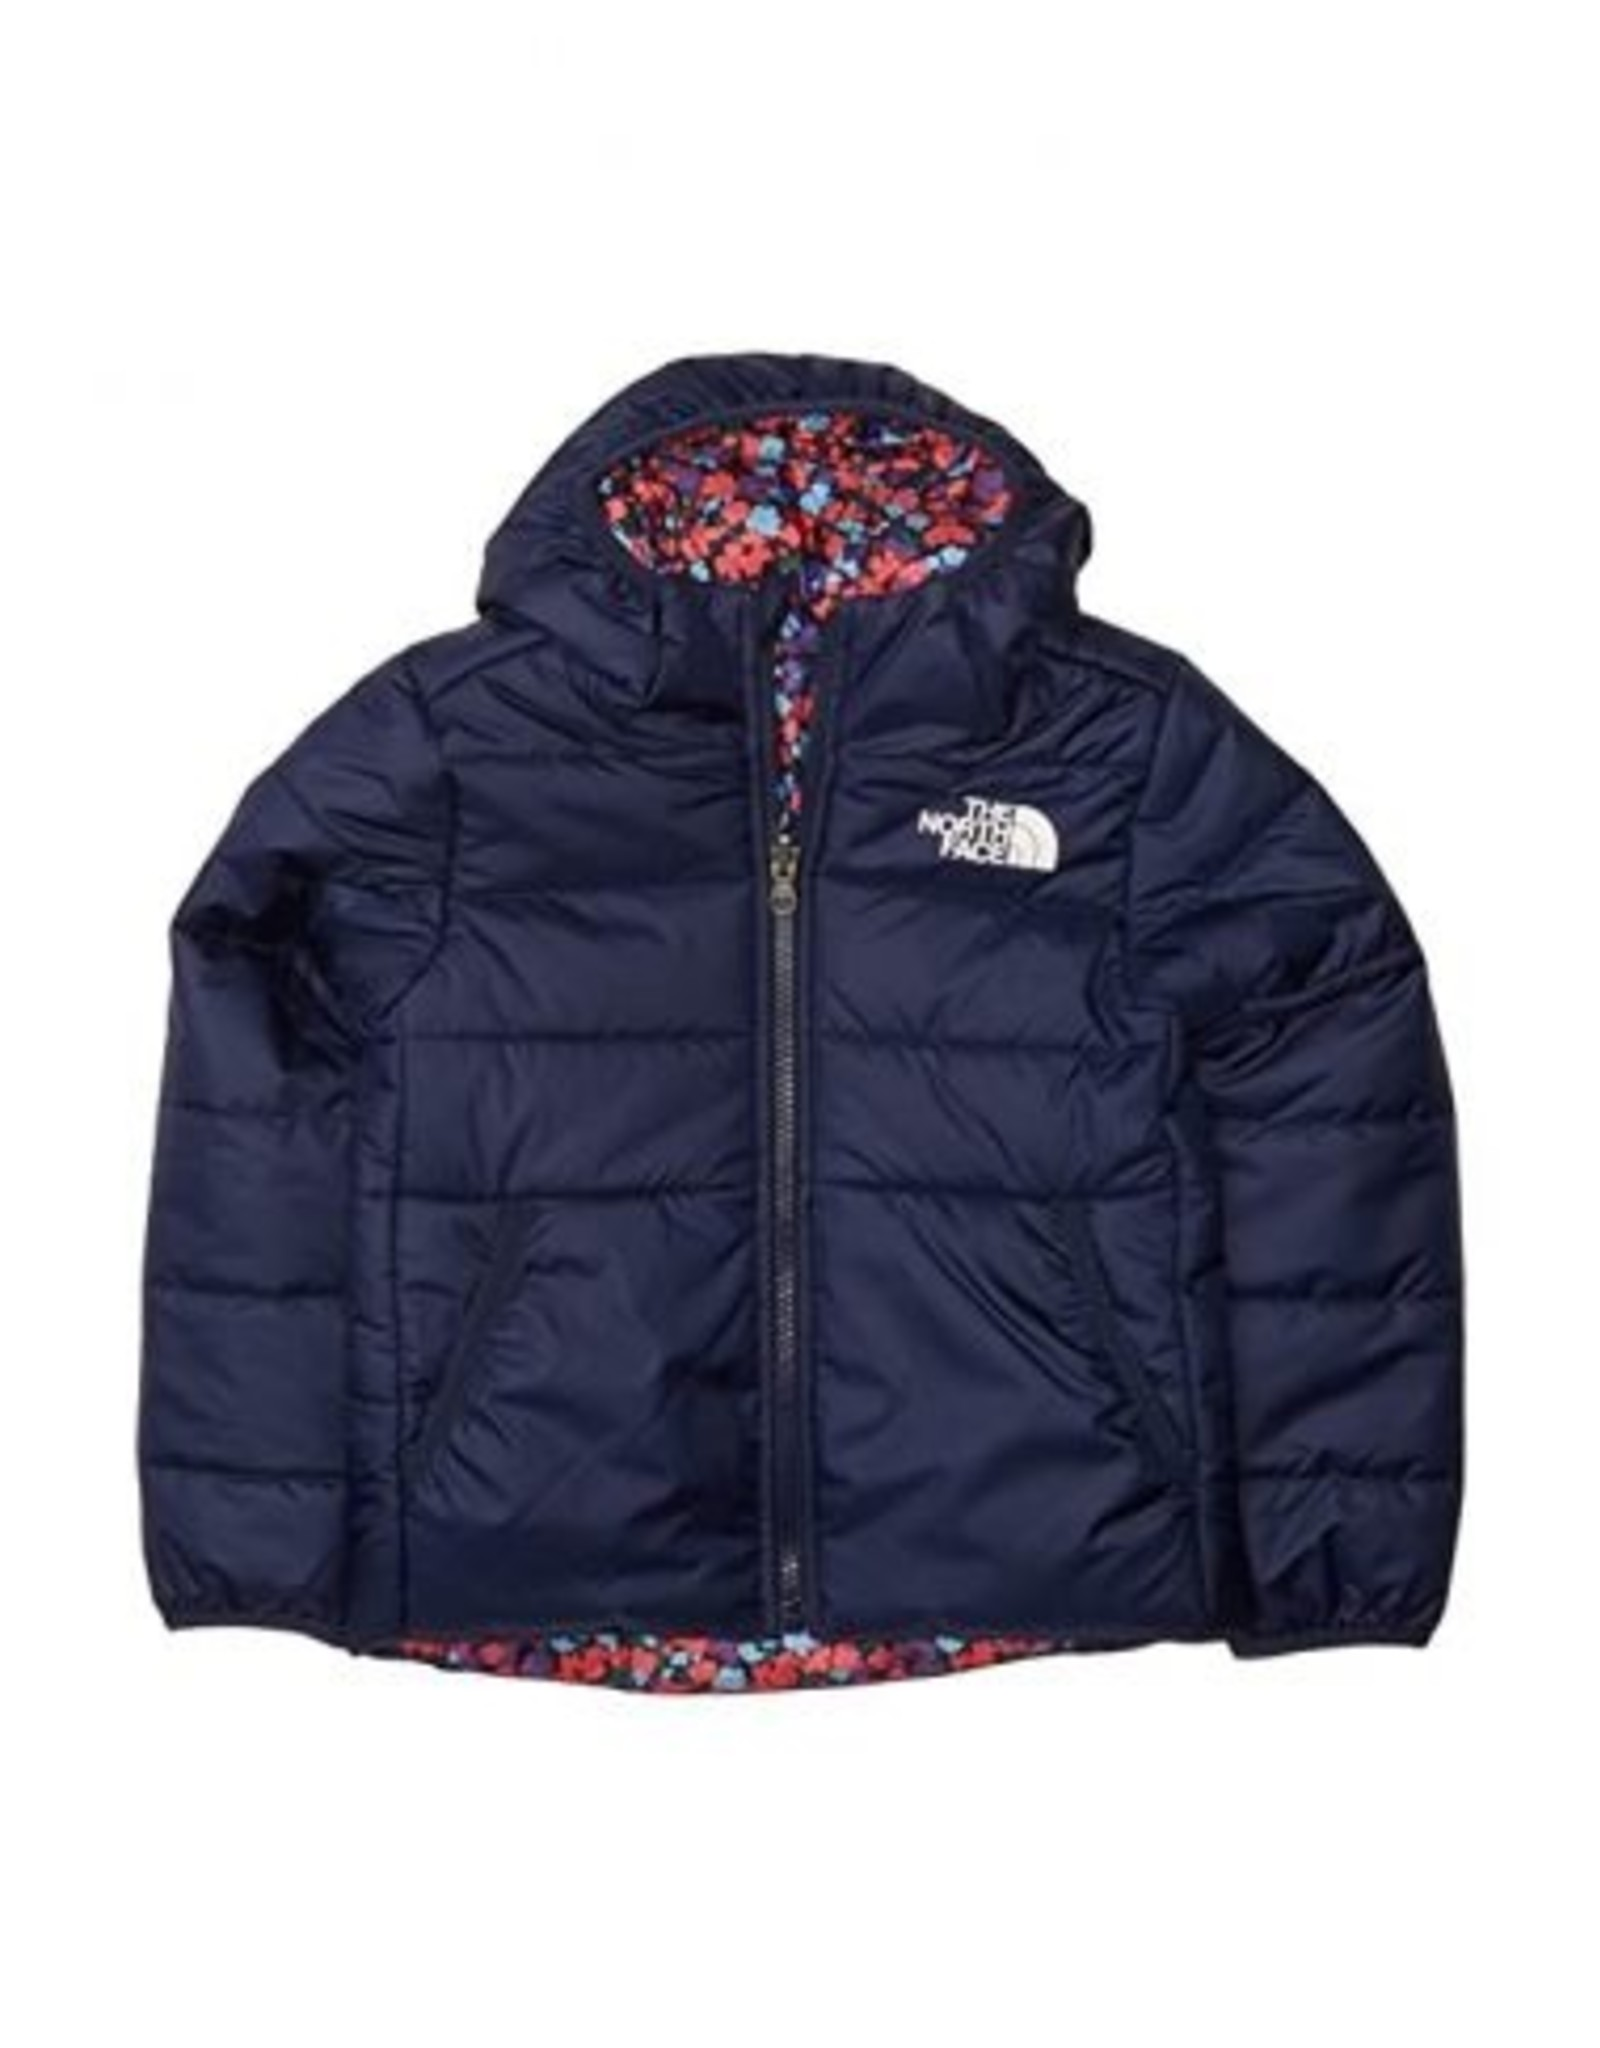 The North Face The North Face Girl's Reversible Perrito Jacket -W2020